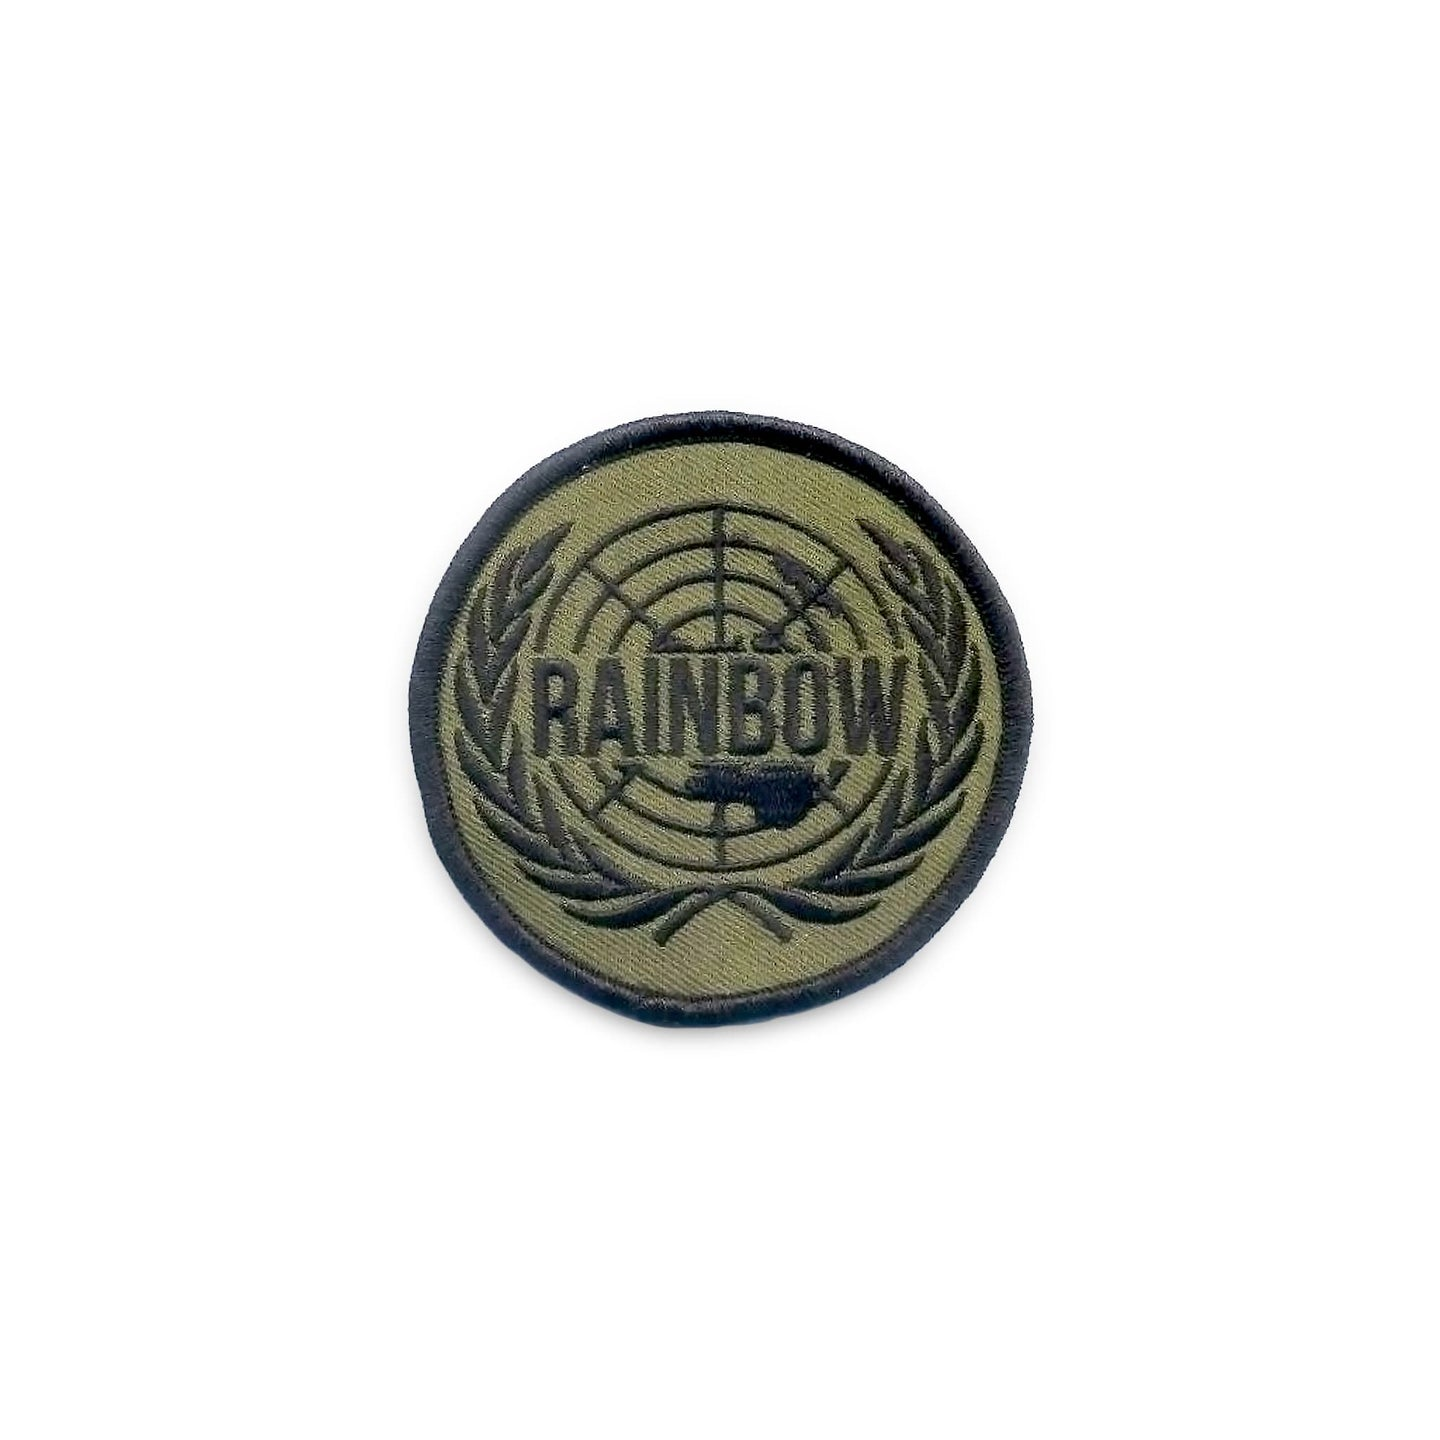 TEAM RAINBOW PATCH